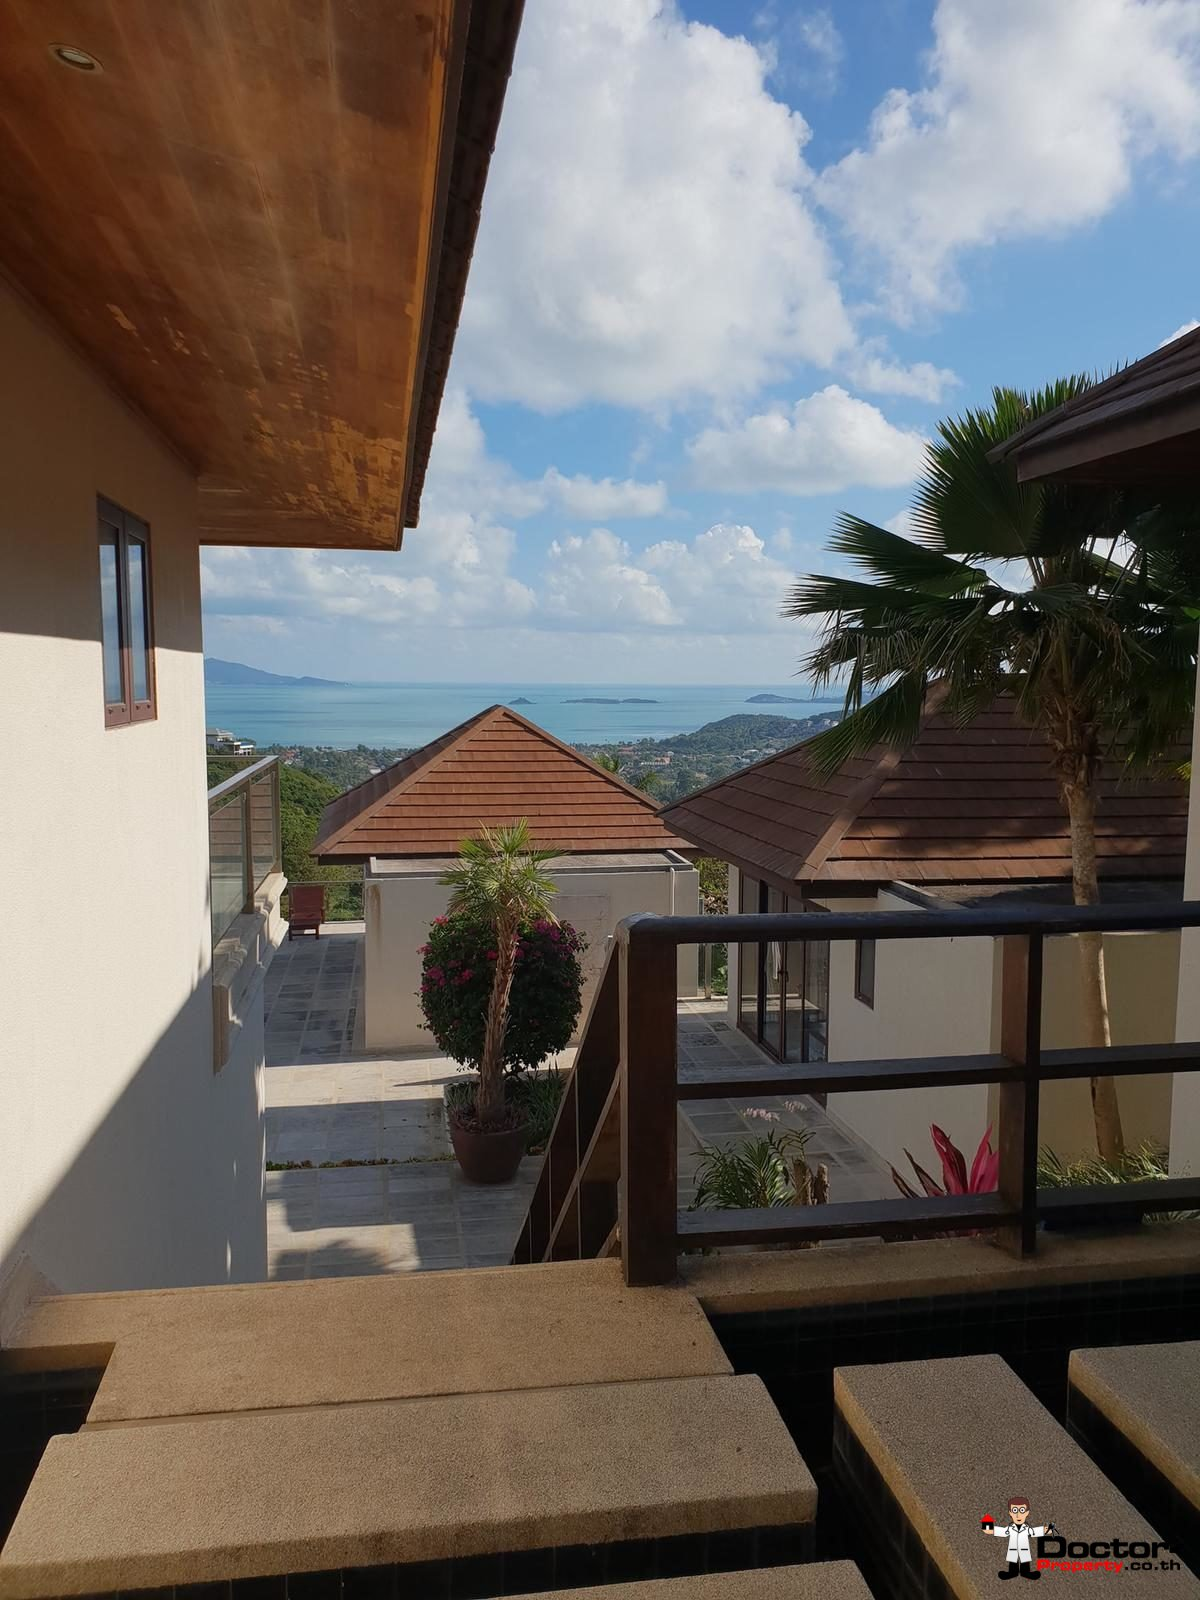 6 Bedroom Villa with Sea View - Bophut - Koh Samui - for sale 15